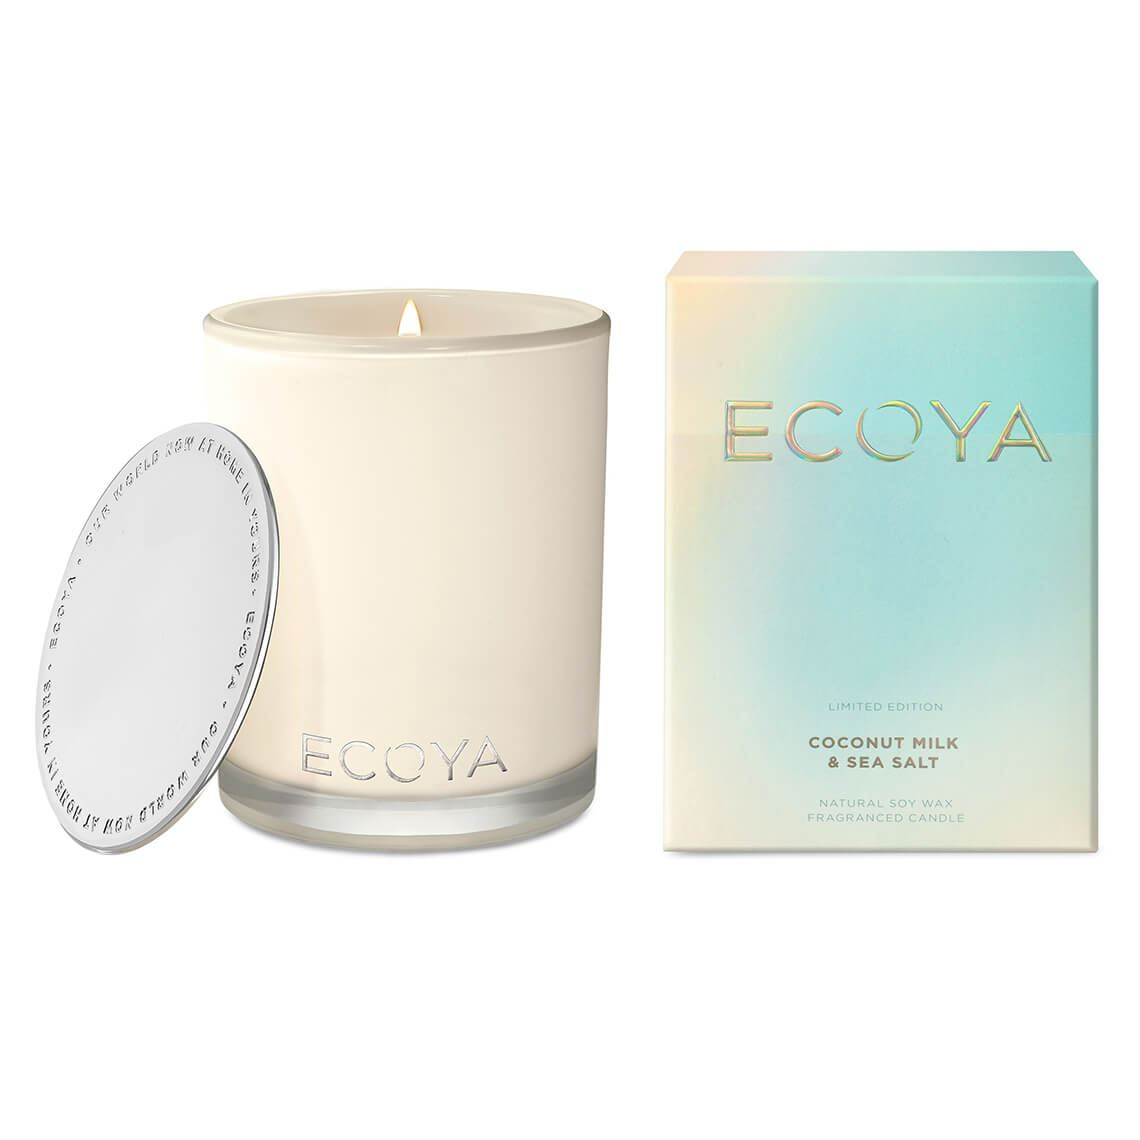 Ecoya Madison Jar Coconut Milk & Sea Salt Size W 10cm x D 10cm x H 14cm in Coconut Milk/Sea Salt Freedom